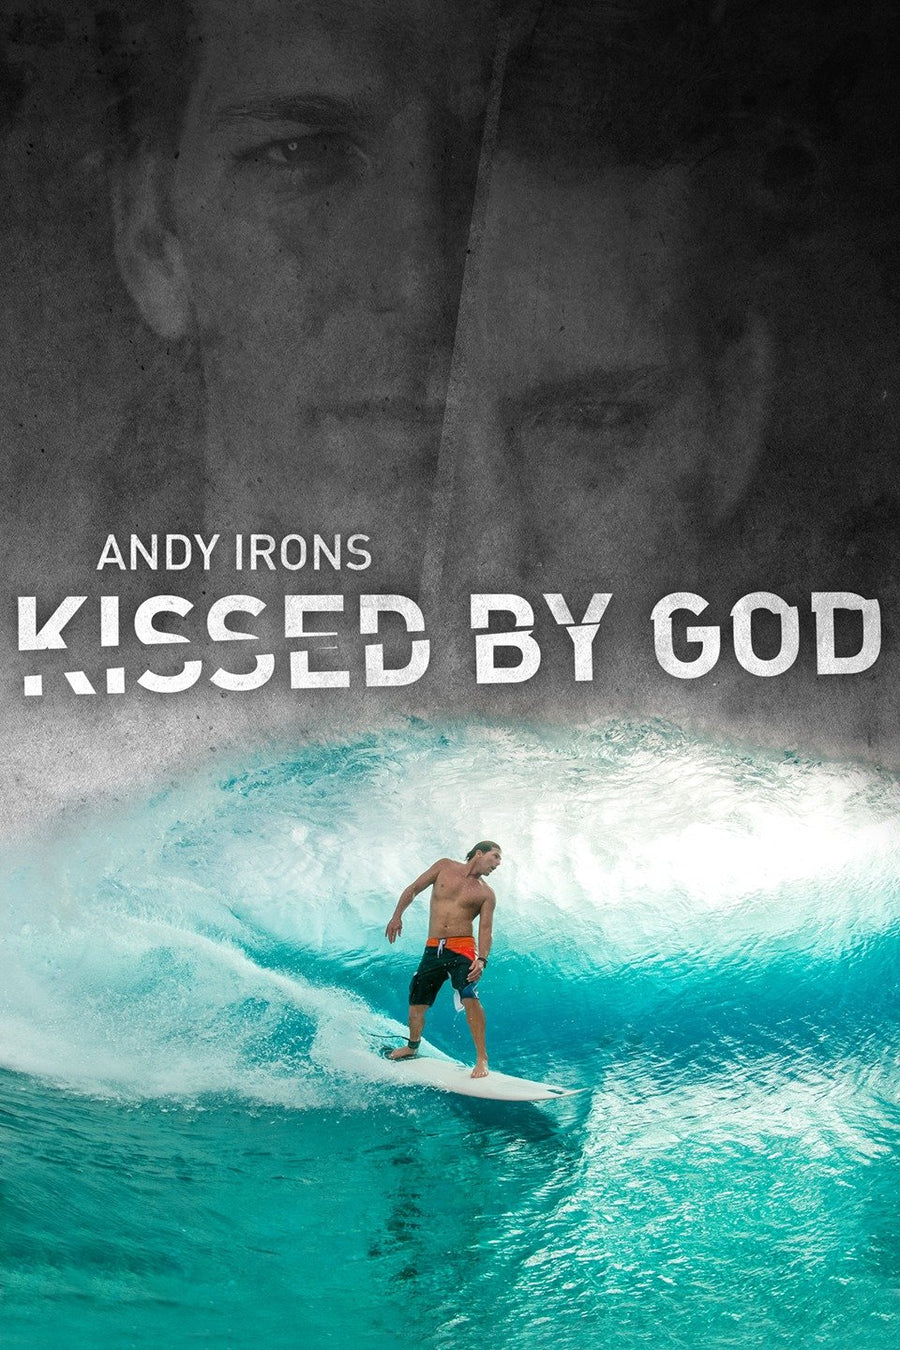 Andy Irons Kissed By God DVD